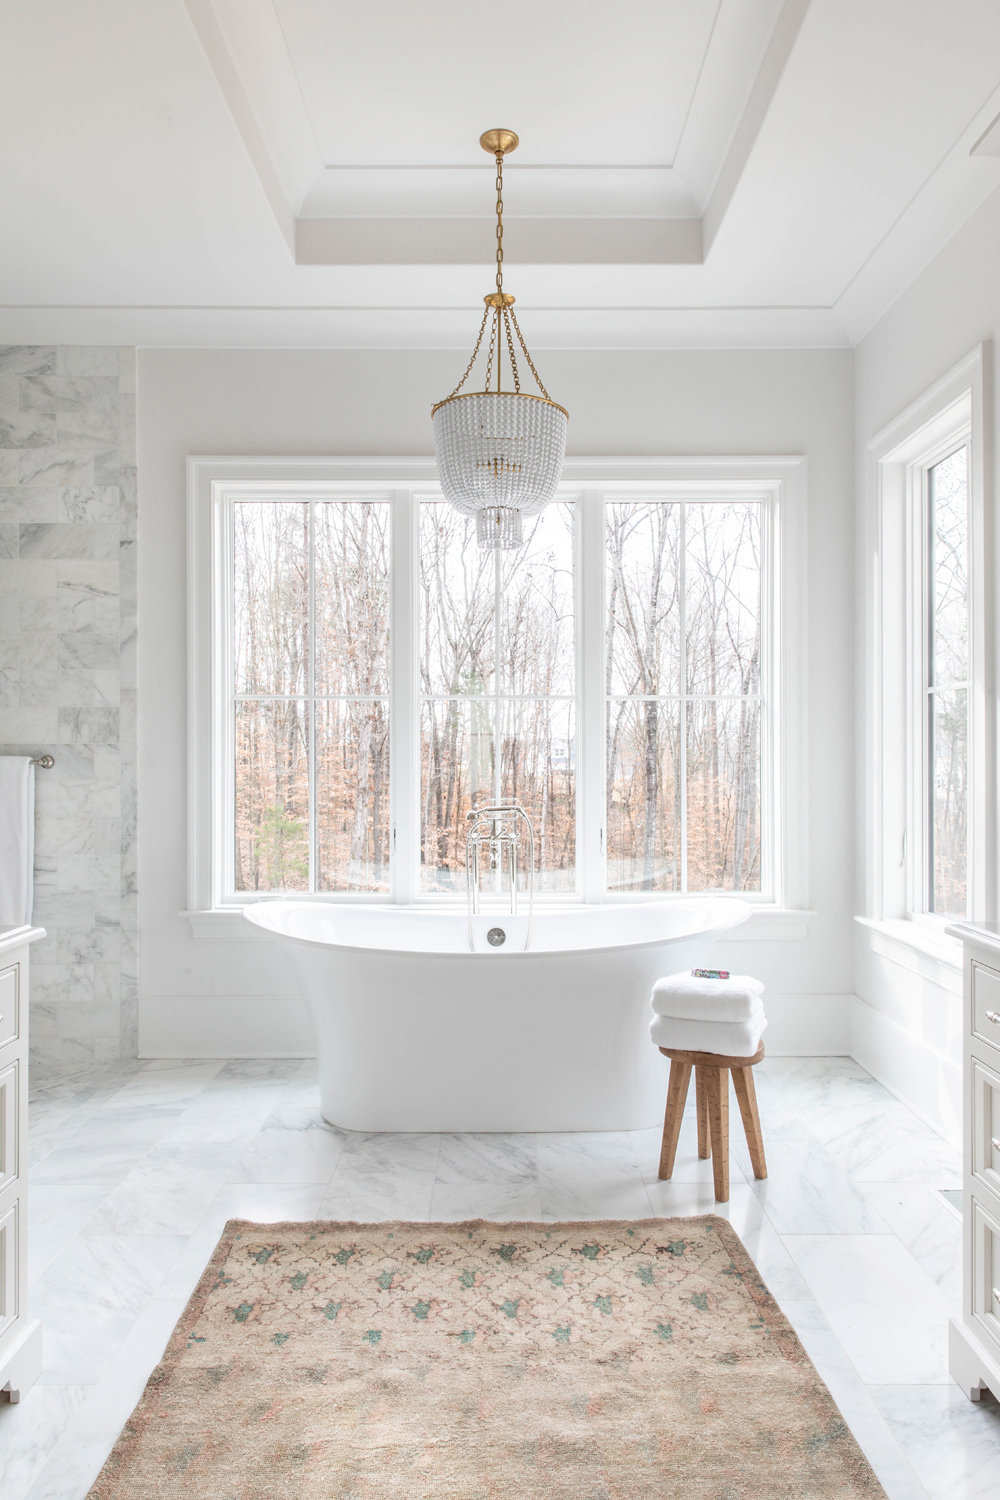 White-Carrara-Marble-Master-Bathroom-with-Soaking-Tub-1